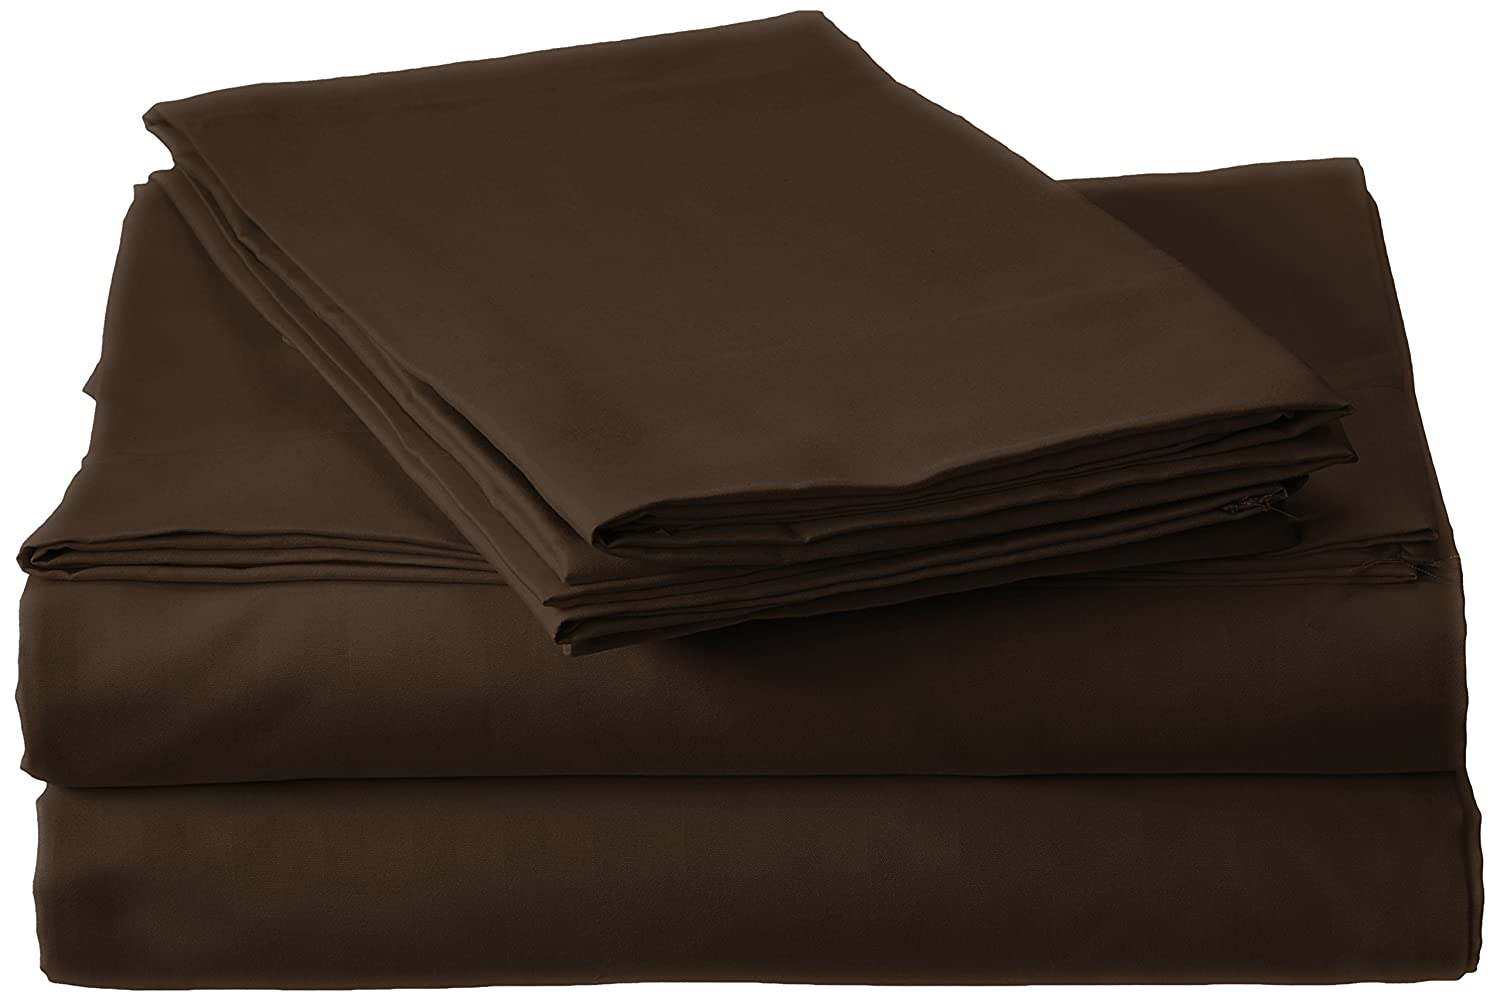 Millenium Linen Full Size Bed Sheet Set - Coffee - 1600 Series 4 Piece - Deep Pocket - Cool and Wrinkle Fre e - 1 Fitted, 1 Flat, 2 Pillow Cases